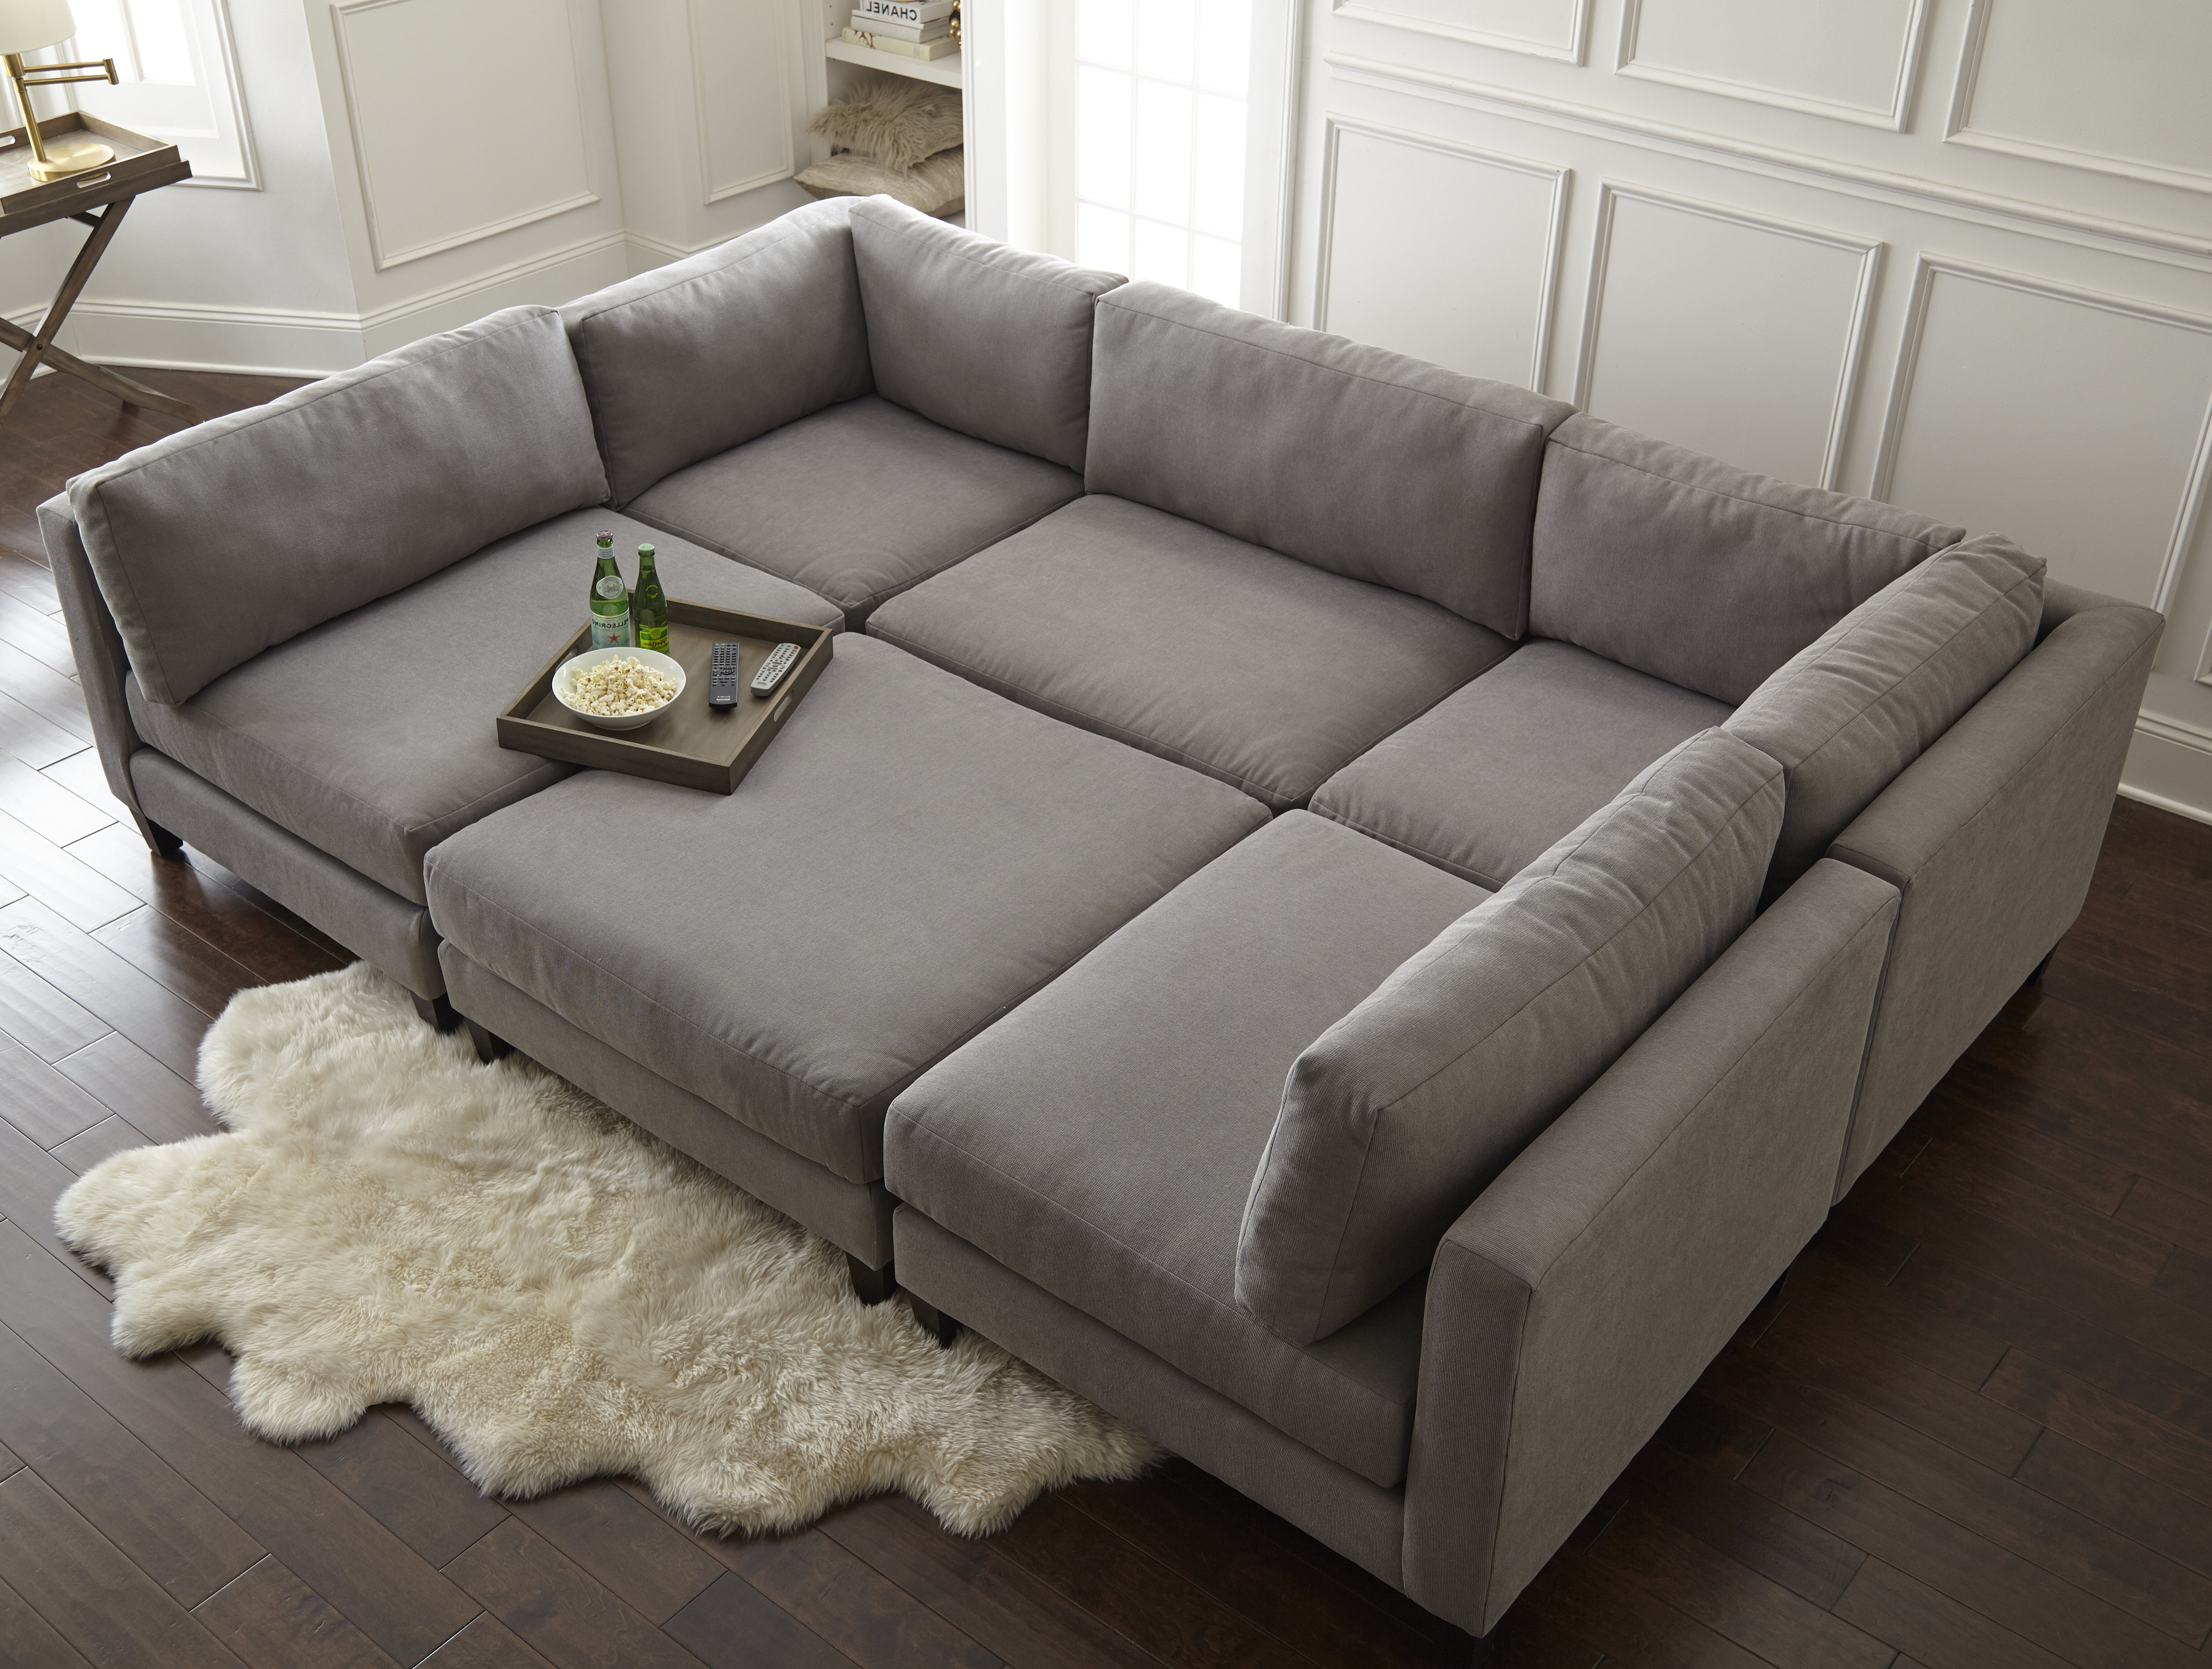 Wayfair Inside Widely Used Oversized Sectional Sofas (View 12 of 15)